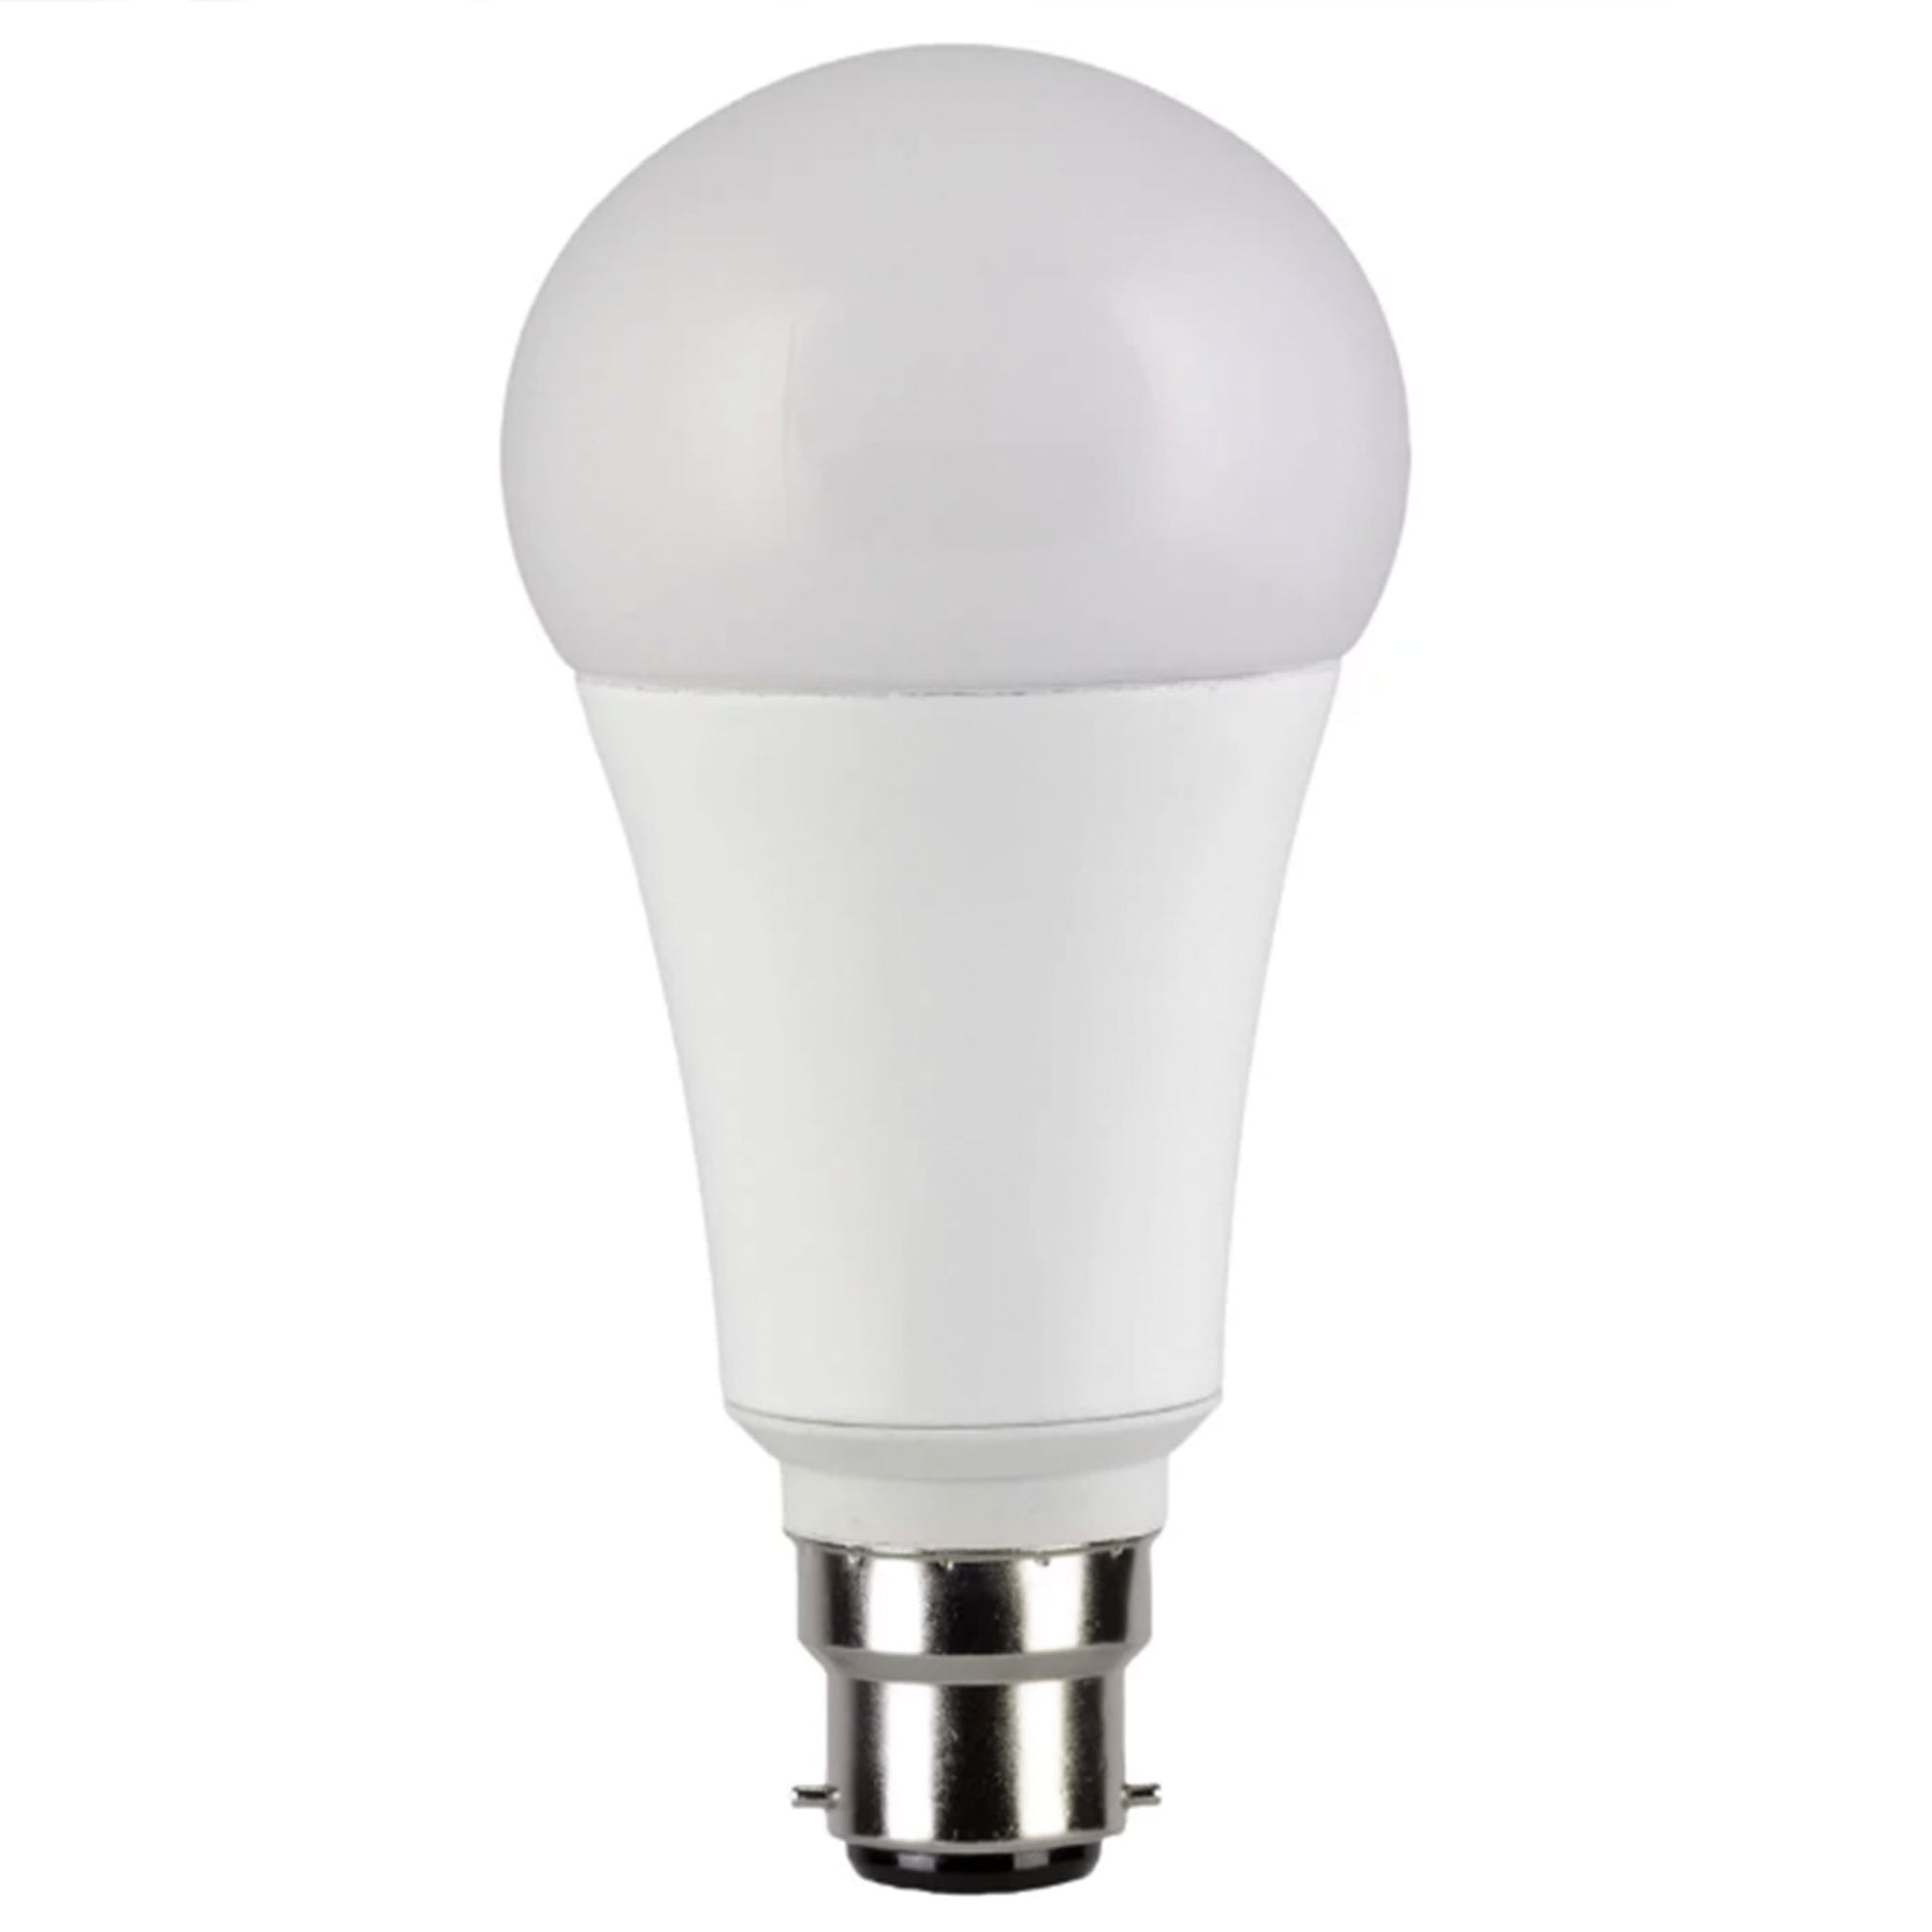 Daylight 15W LED Bulb - Bayonet